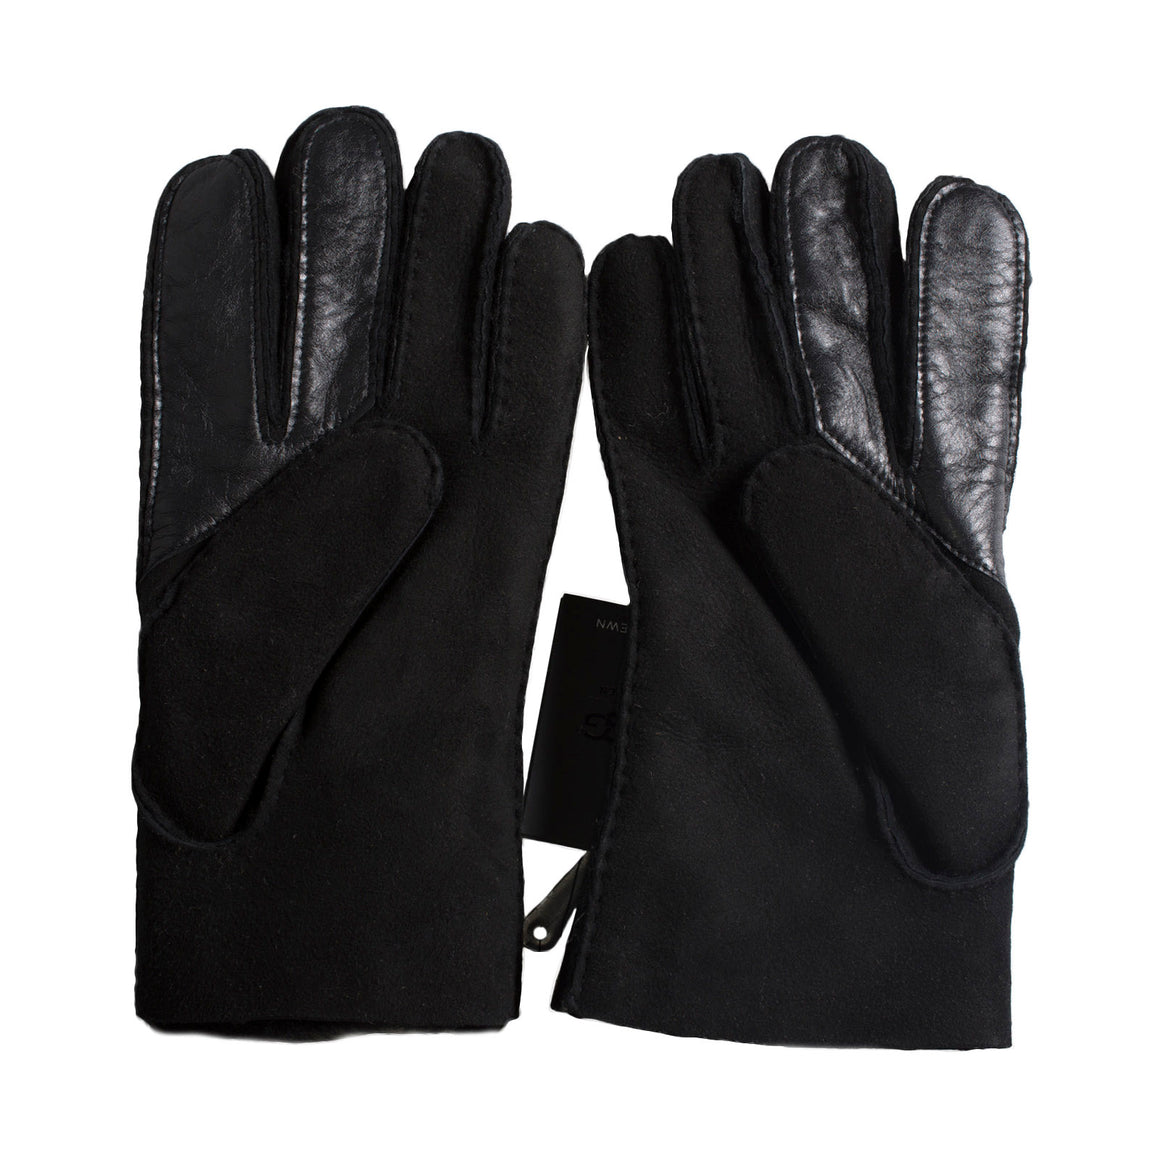 UGG Sheepskin Smart Black Gloves - Men's